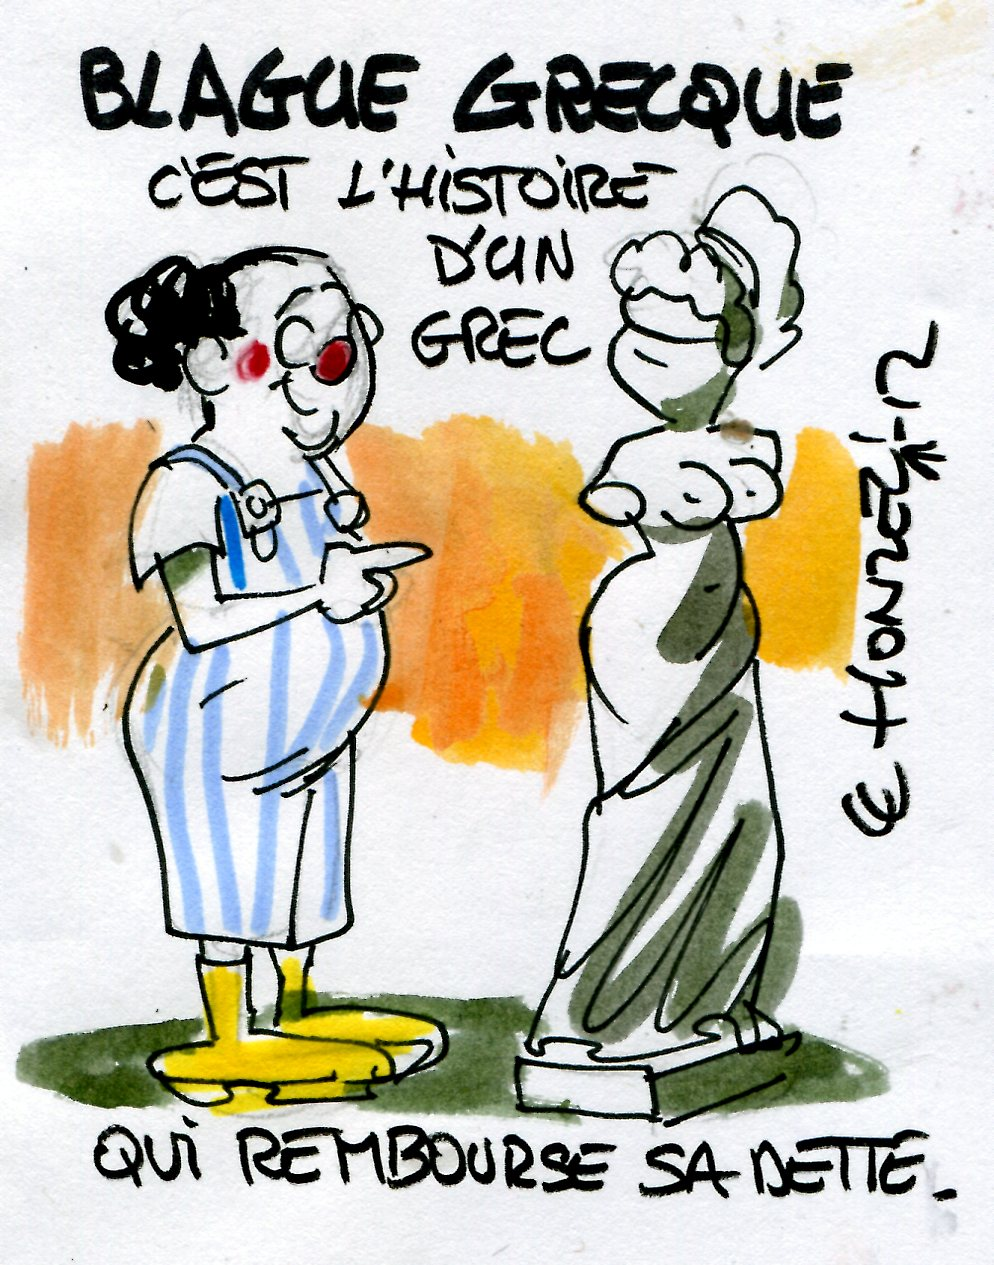 Les r gles budg taires europ ennes une farce grecque for What is farcical